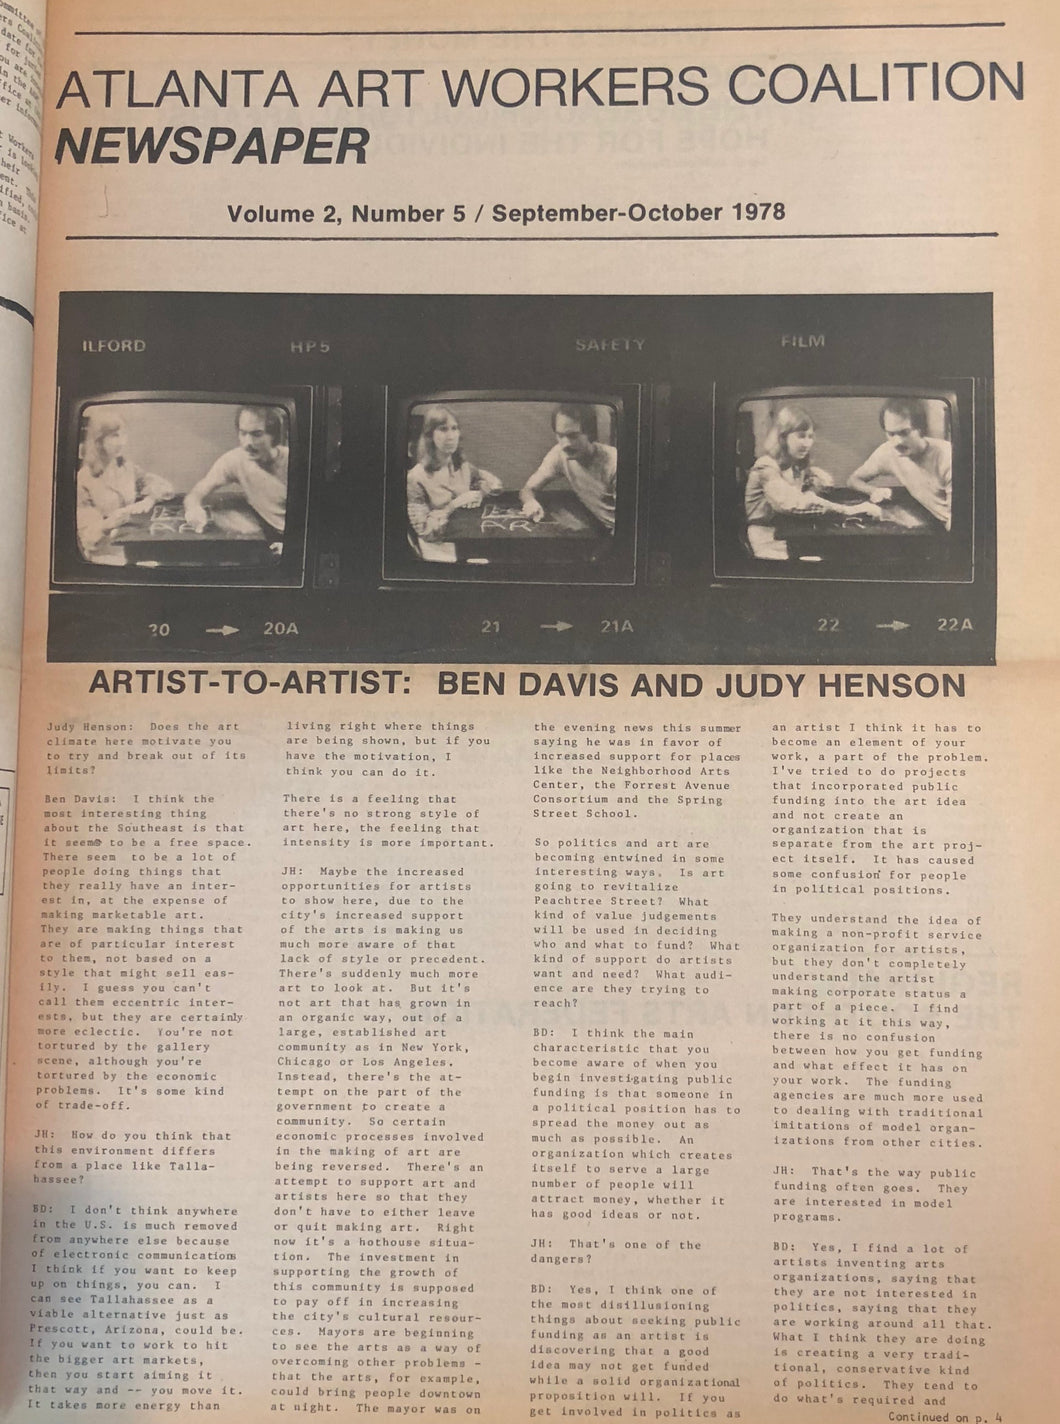 ART PAPERS 02.05 - Sept/Oct 1978 - SOLD OUT